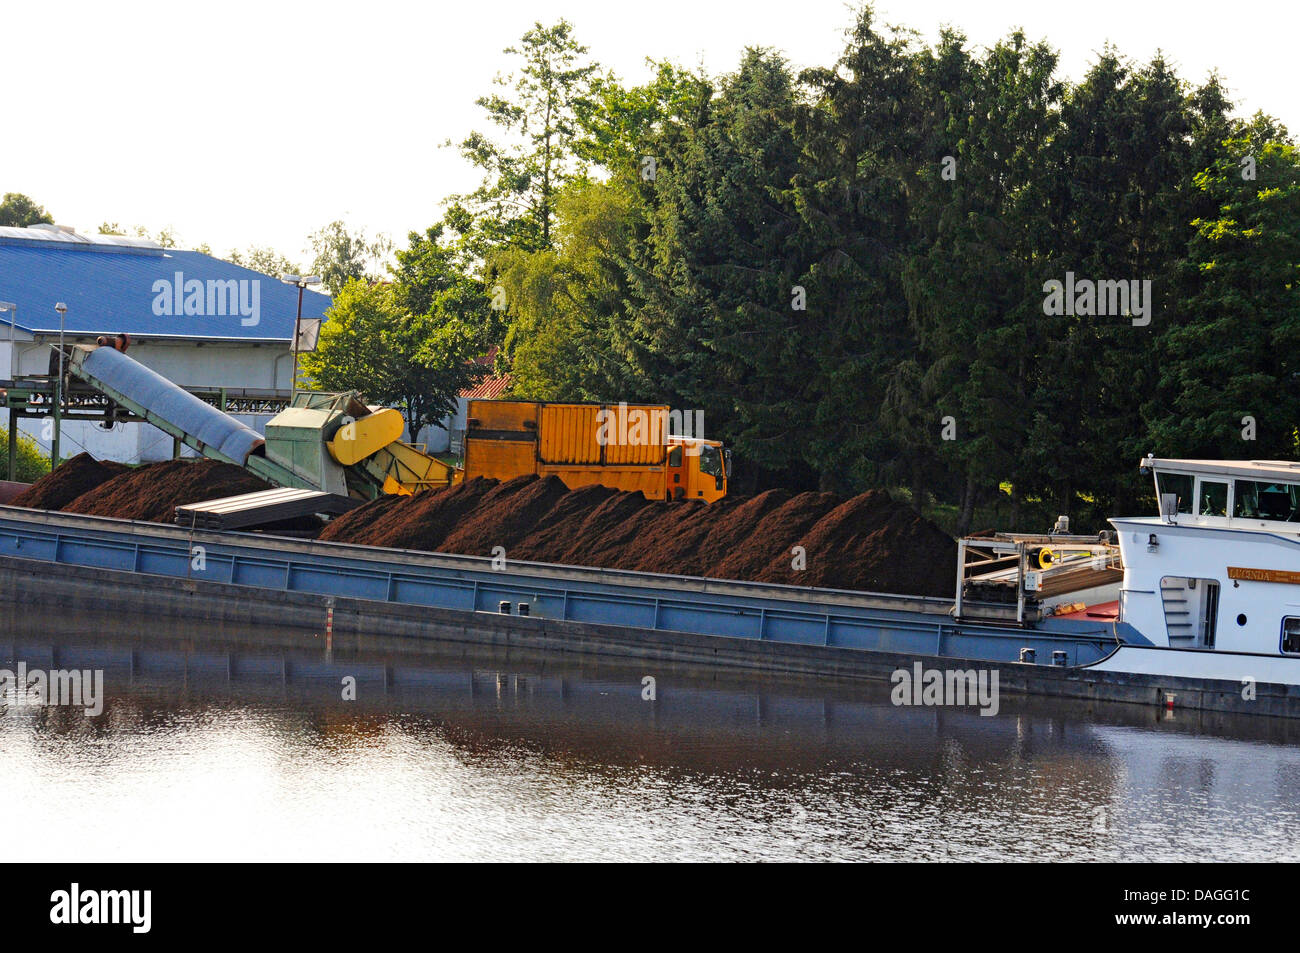 cargo ship loaded with peat in inner harbor of Bockhorst, Germany, Lower Saxony, Emsland, Bockhorst Stock Photo